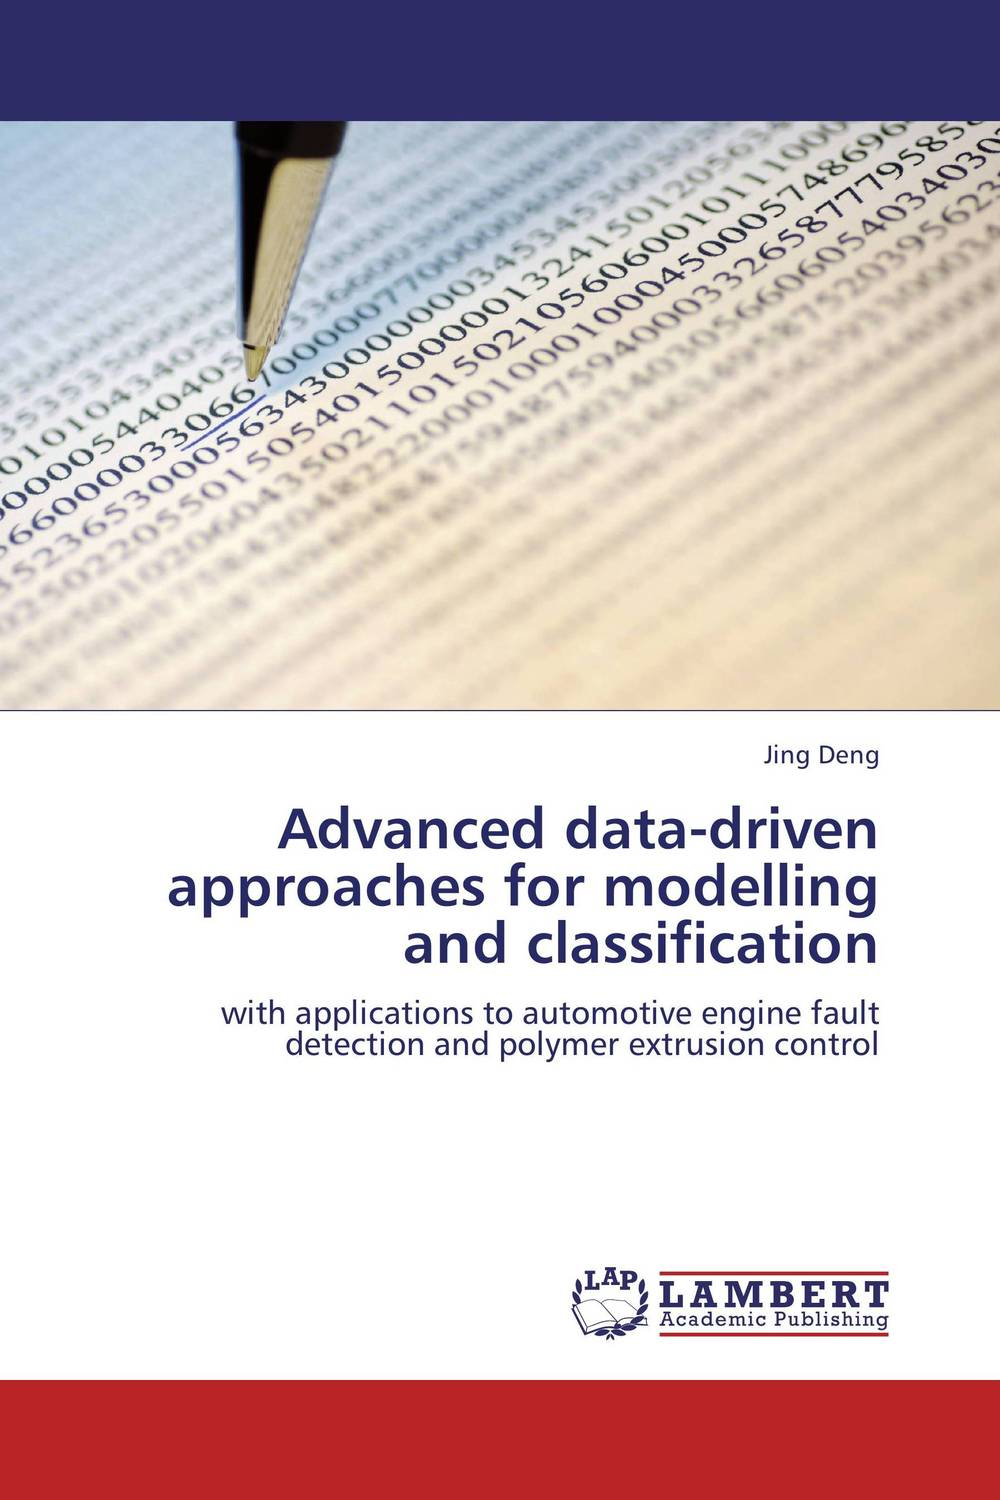 Advanced data-driven approaches for modelling and classification driven to distraction